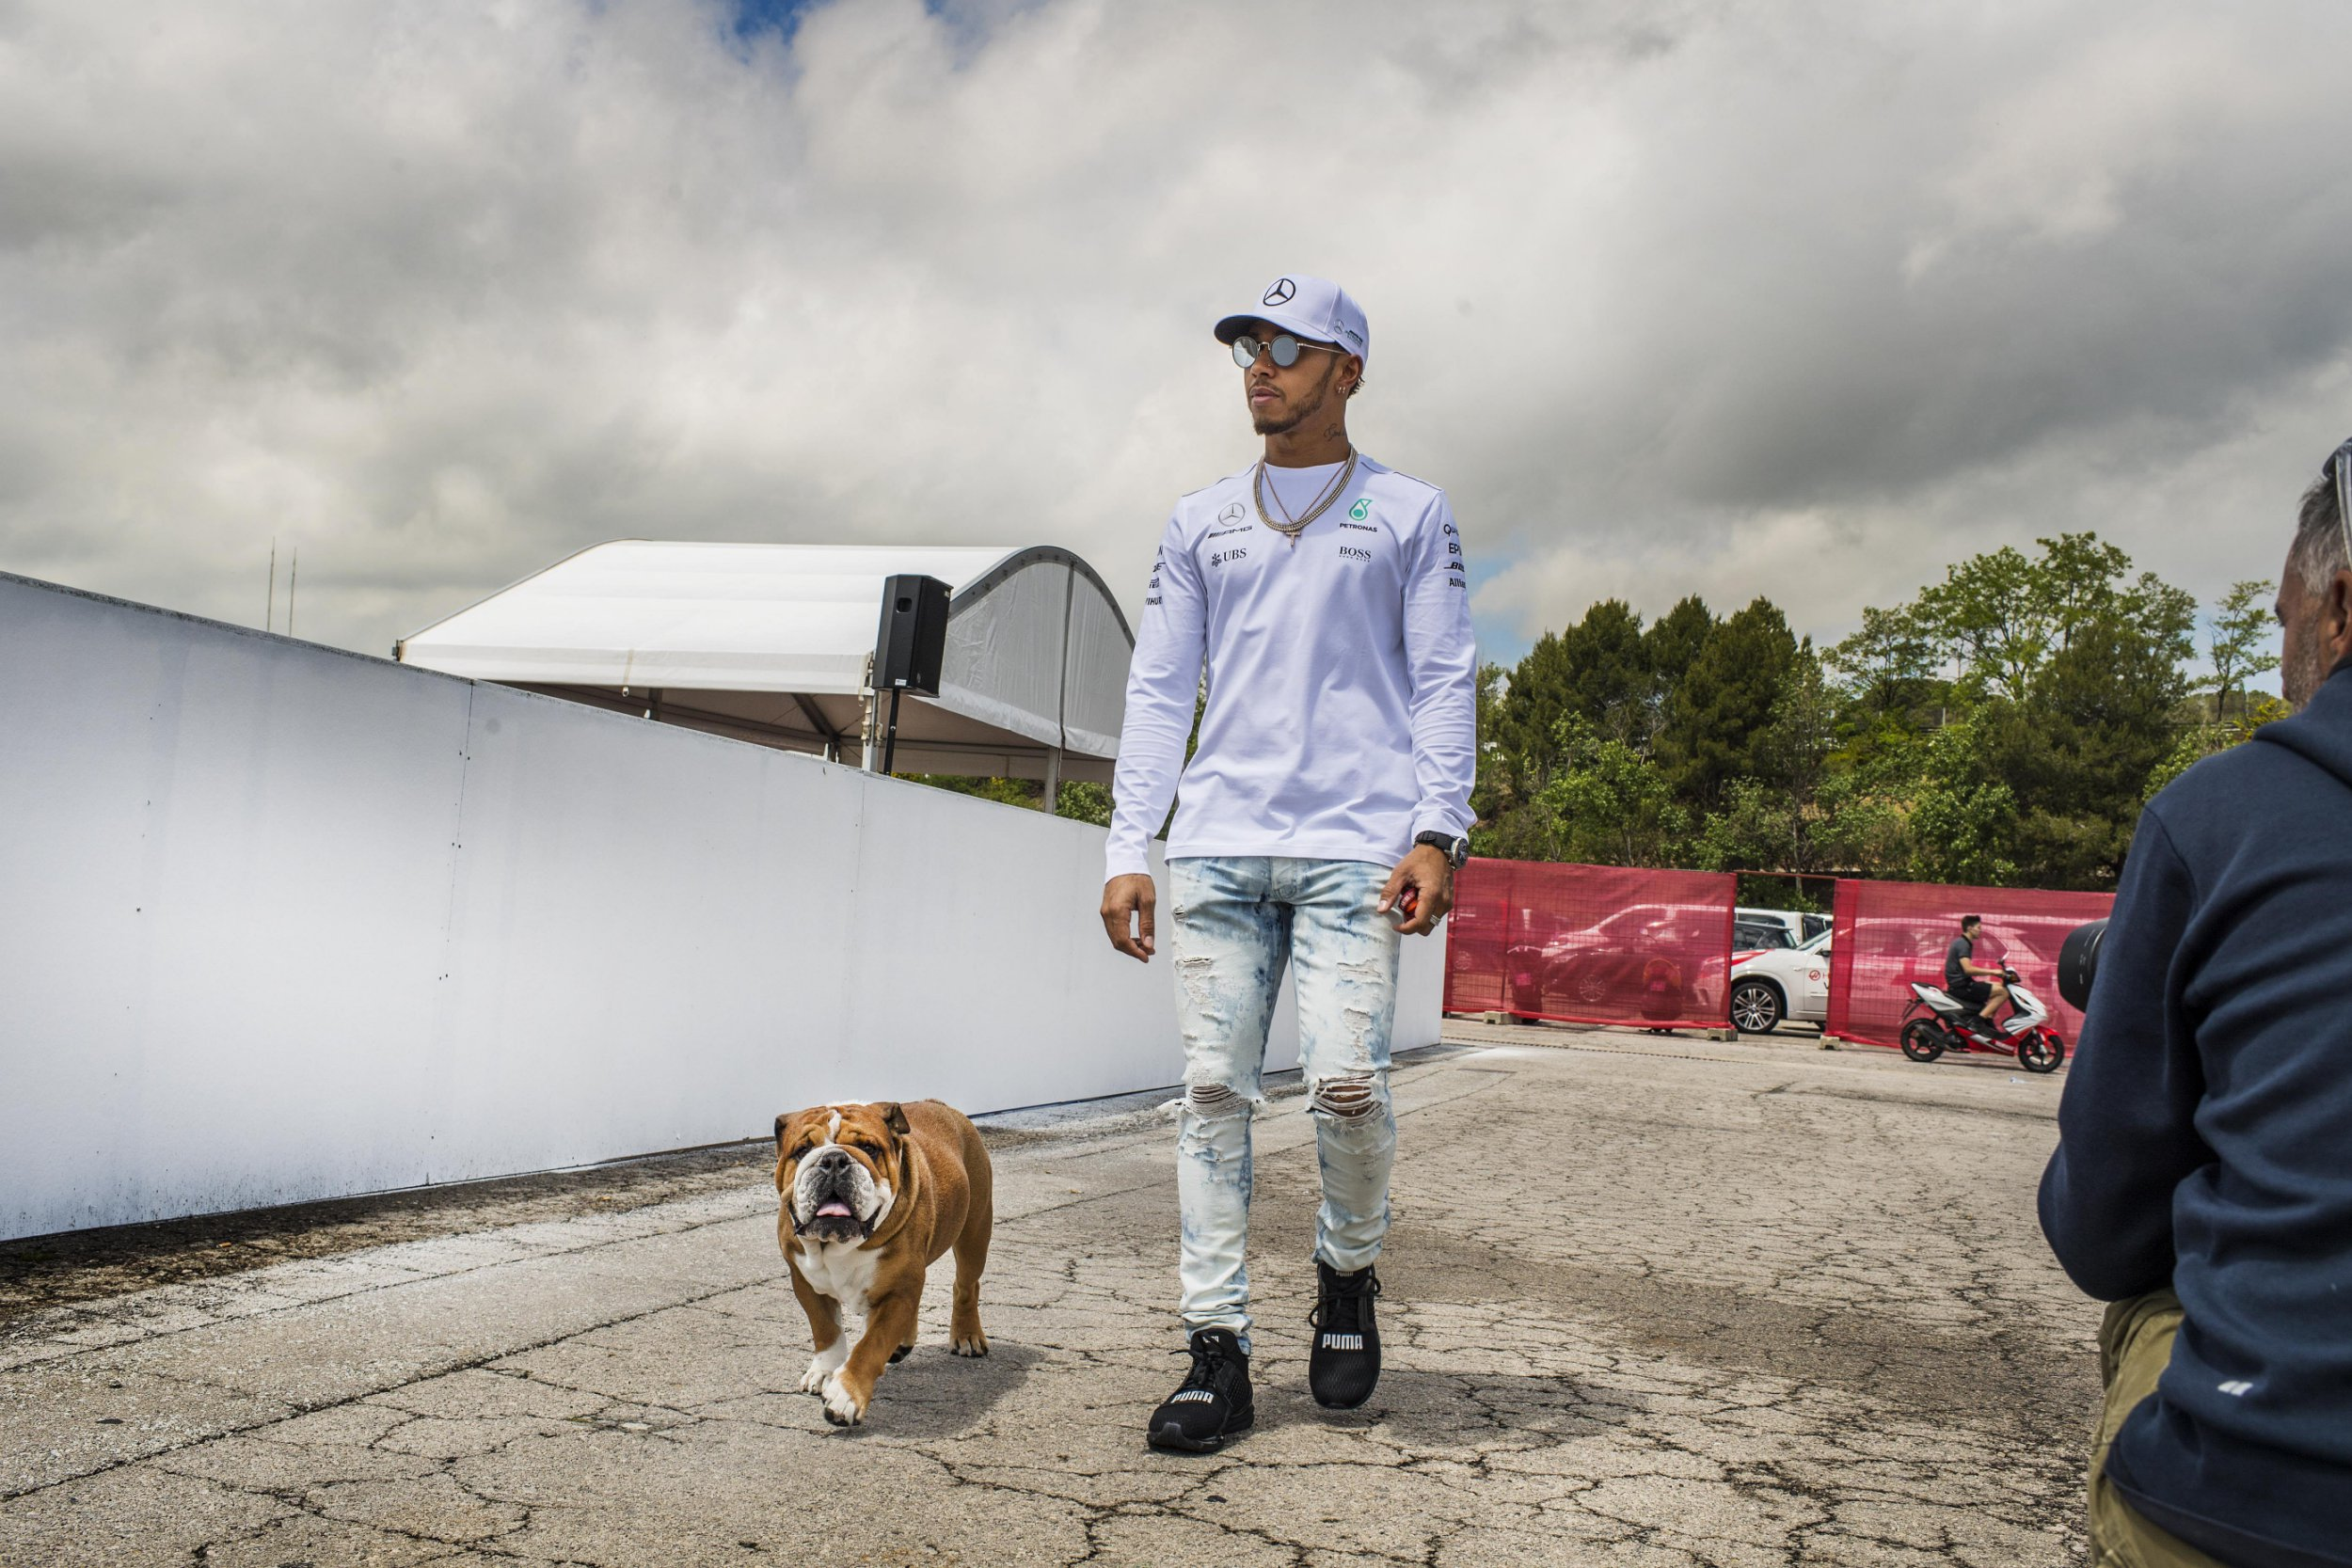 Mandatory Credit: Photo by IBL/REX/Shutterstock (8821724h) Lewis Hamilton and his dog Roscoe Spanish Grand Prix, Preparations, Barcelona, Spain - 11 May 2017